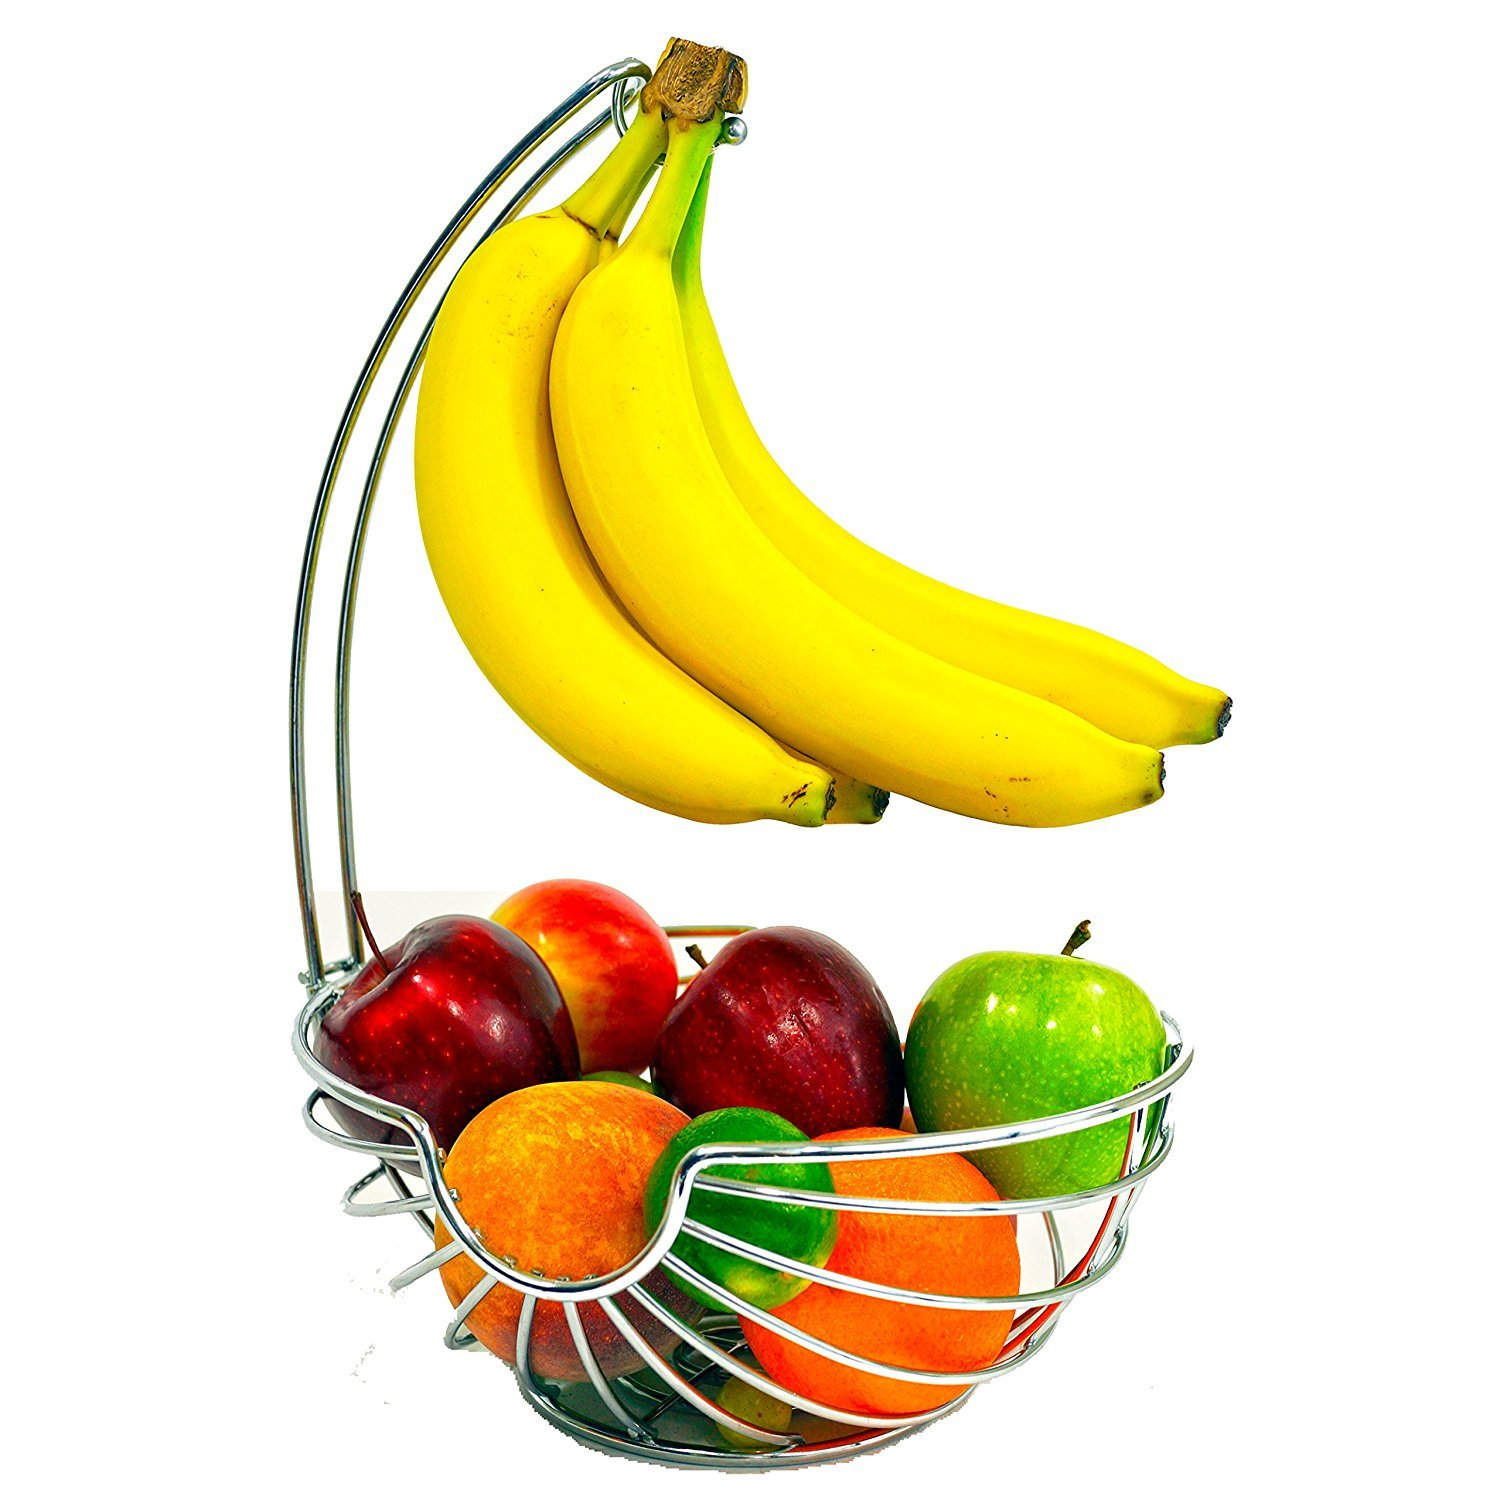 Superiore Livello Chrome Fruit Basket with Banana Hanger, Elegant and Decorative Fruit Bowl with Banana Hook.